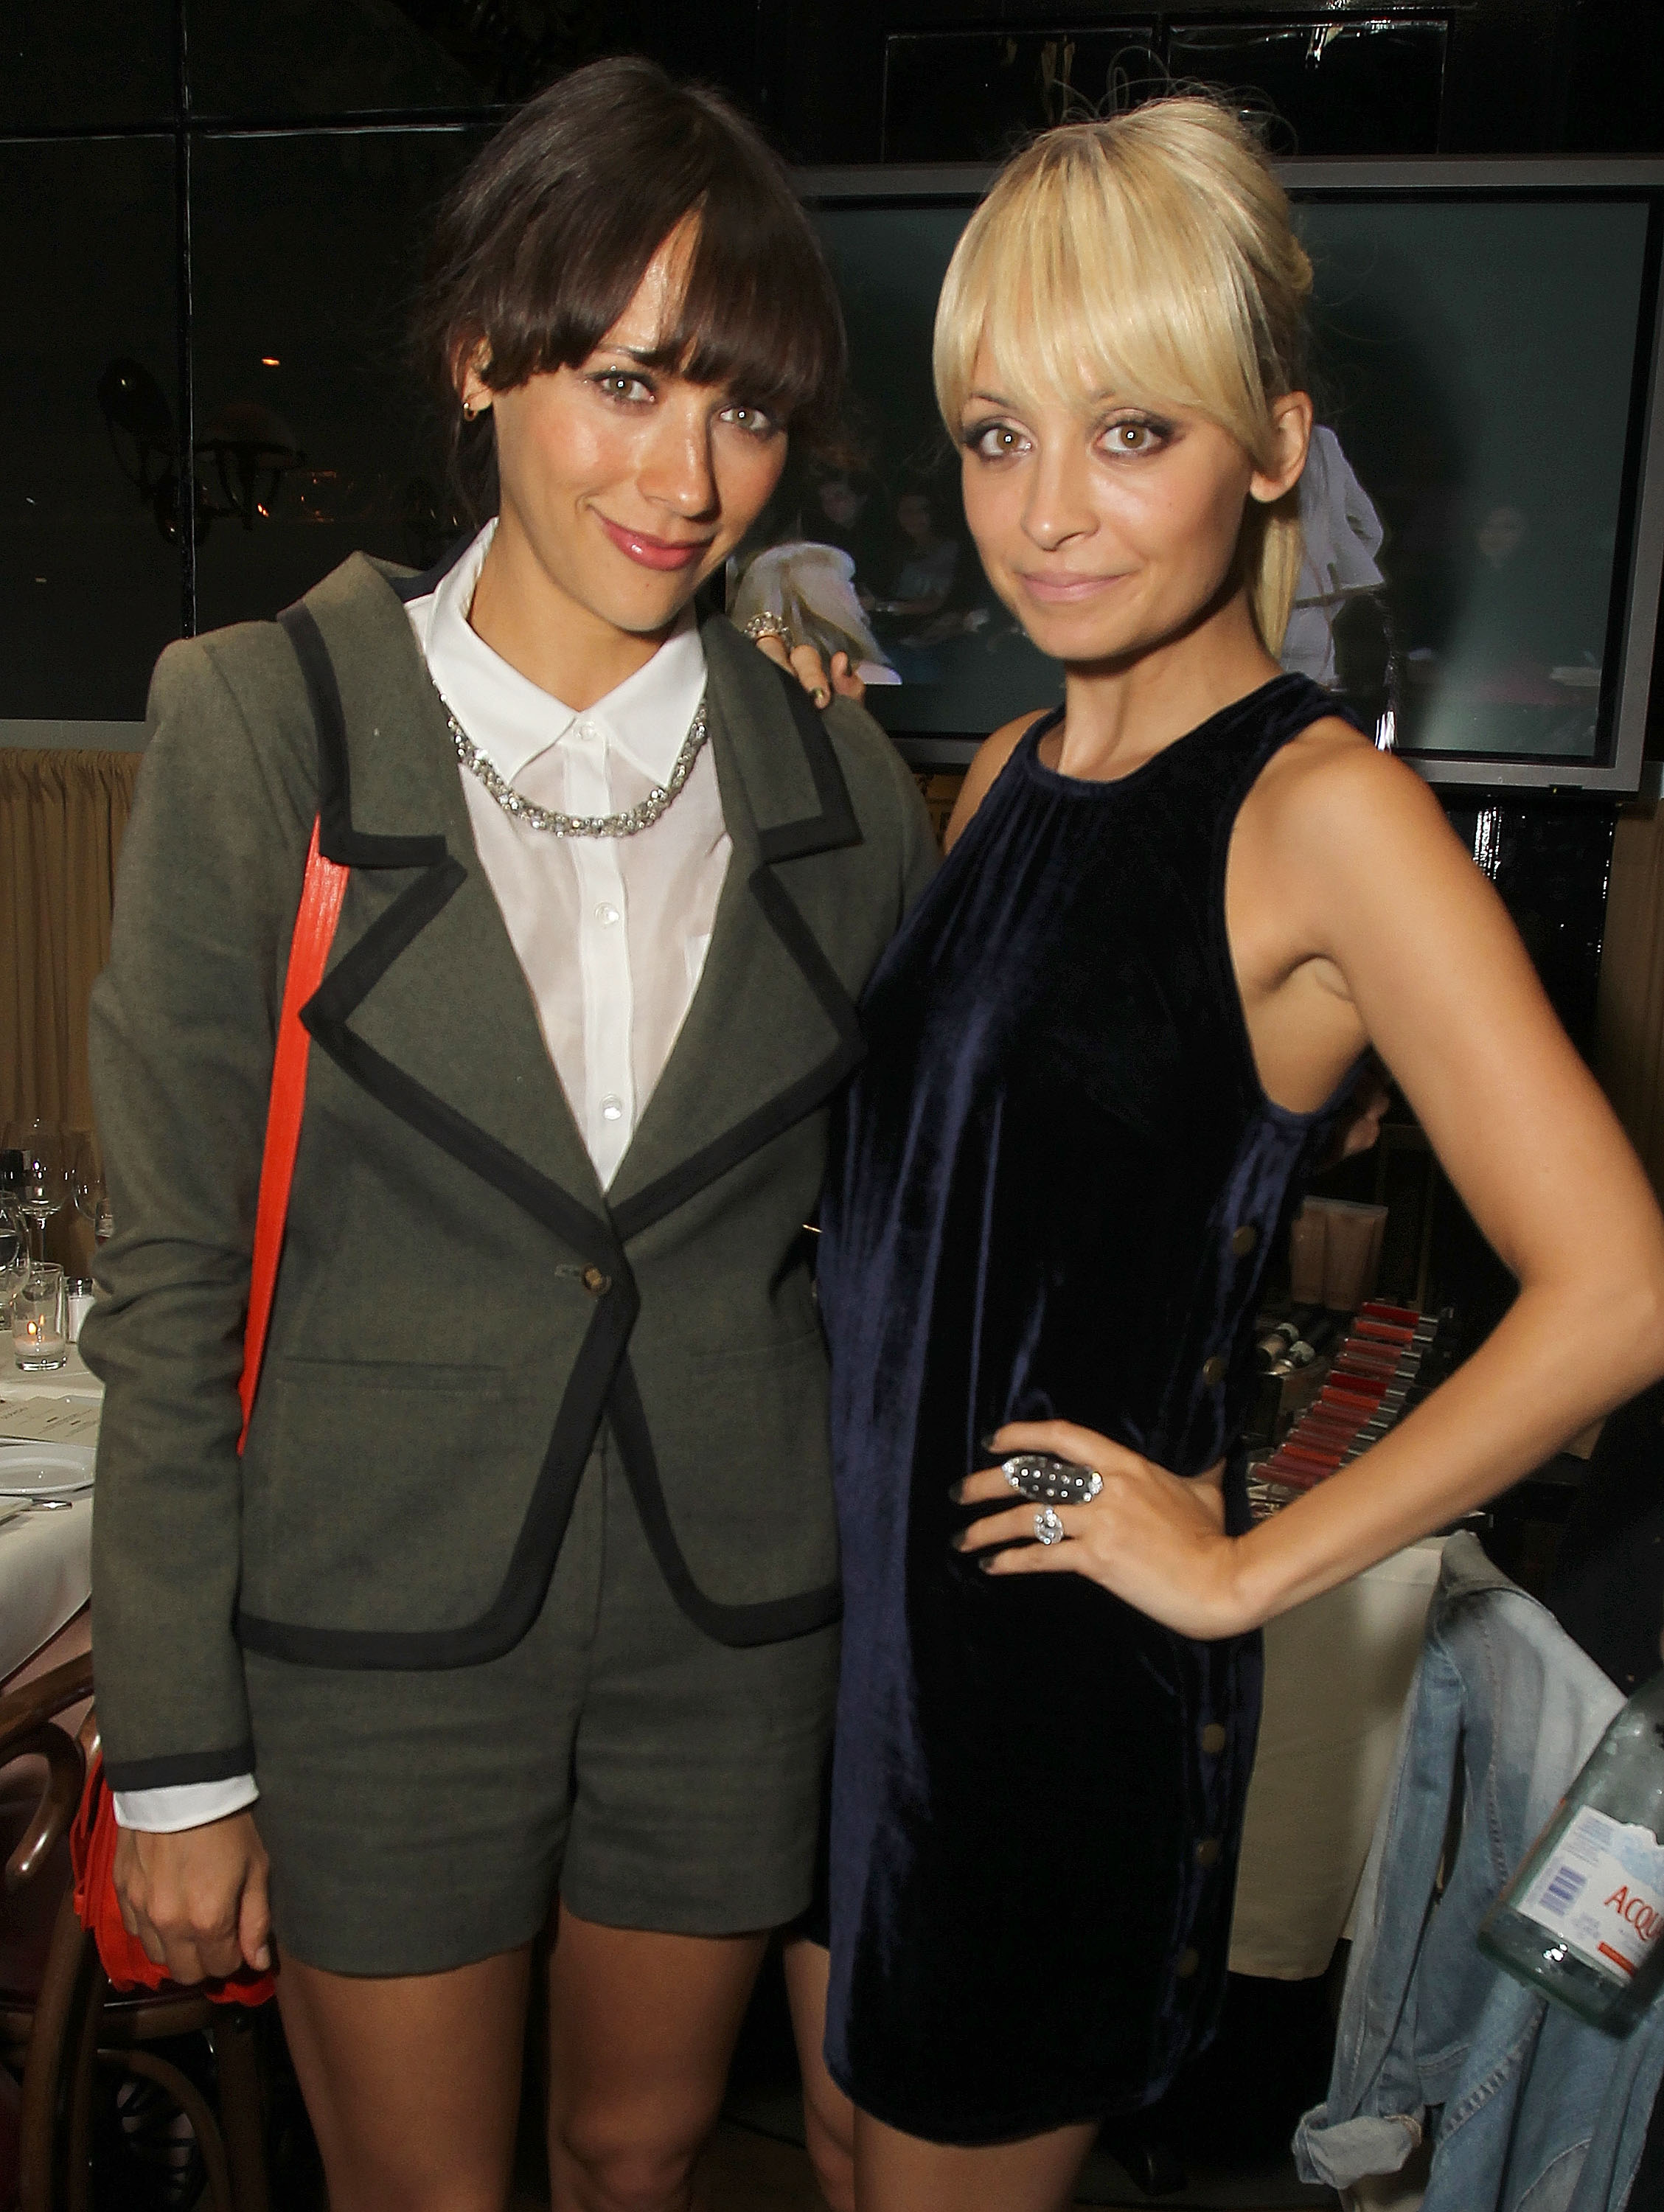 Rashida Jones and Nicole Richie posed together.